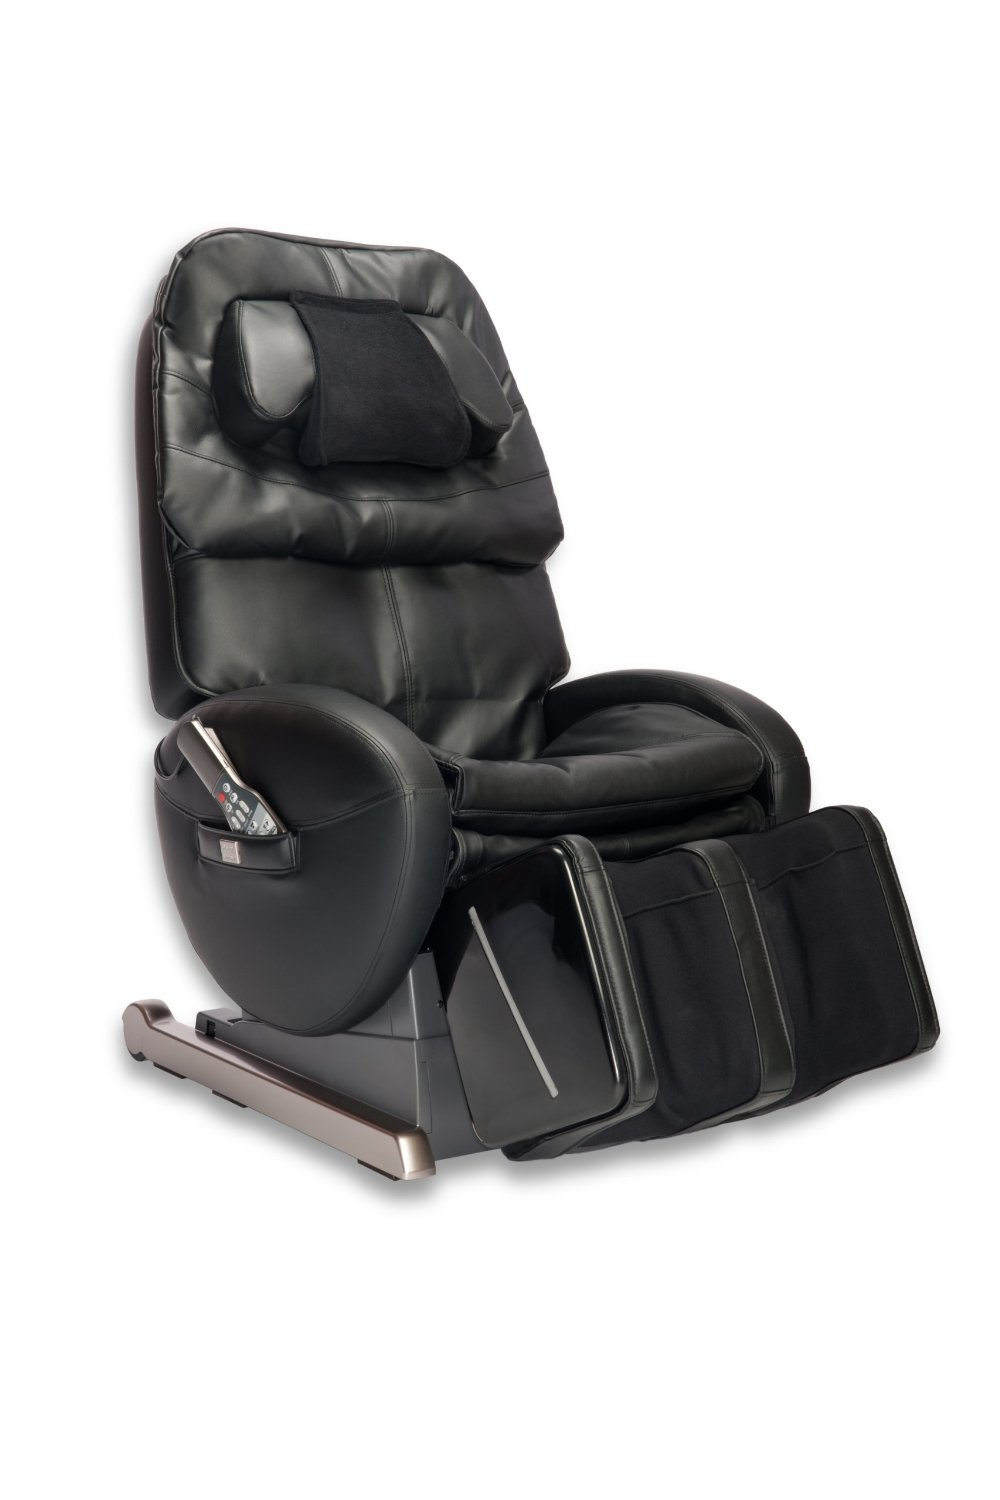 inada massage chair review michael szapkiw